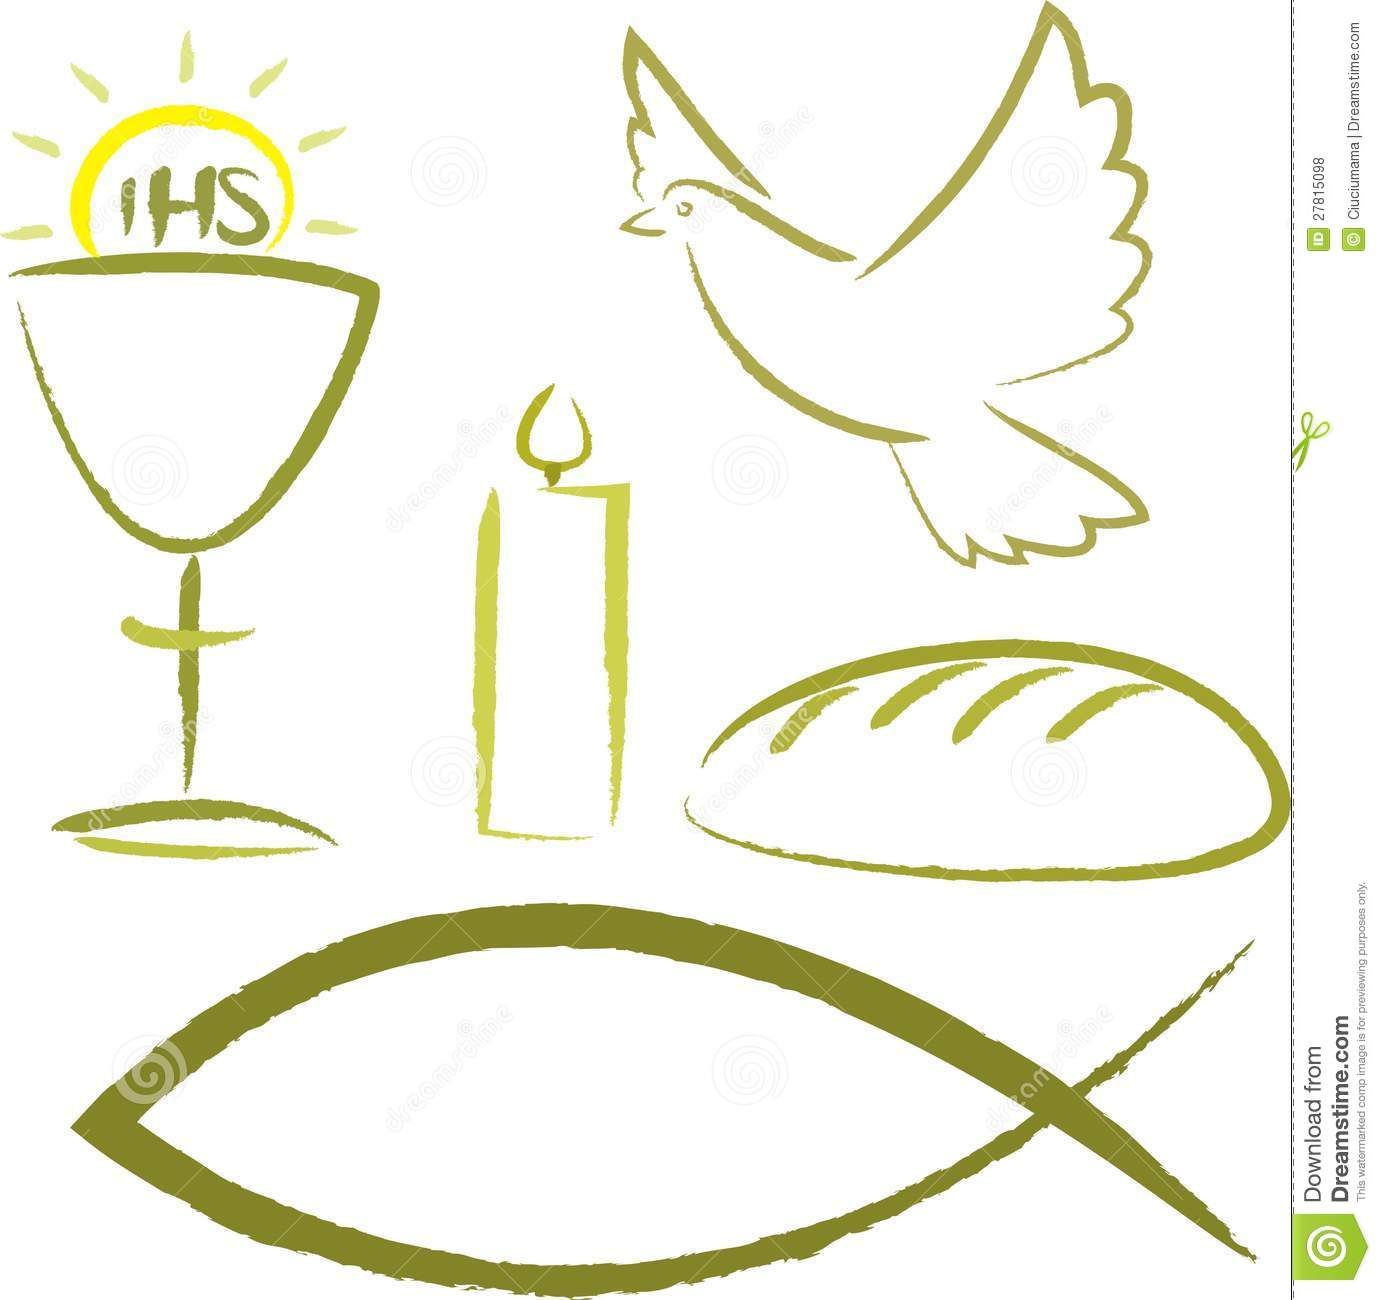 Symbols For Holy Eucharist http://www.dreamstime.com/royalty-free-stock-photos-holy-communion-religious-symbols-image27815098